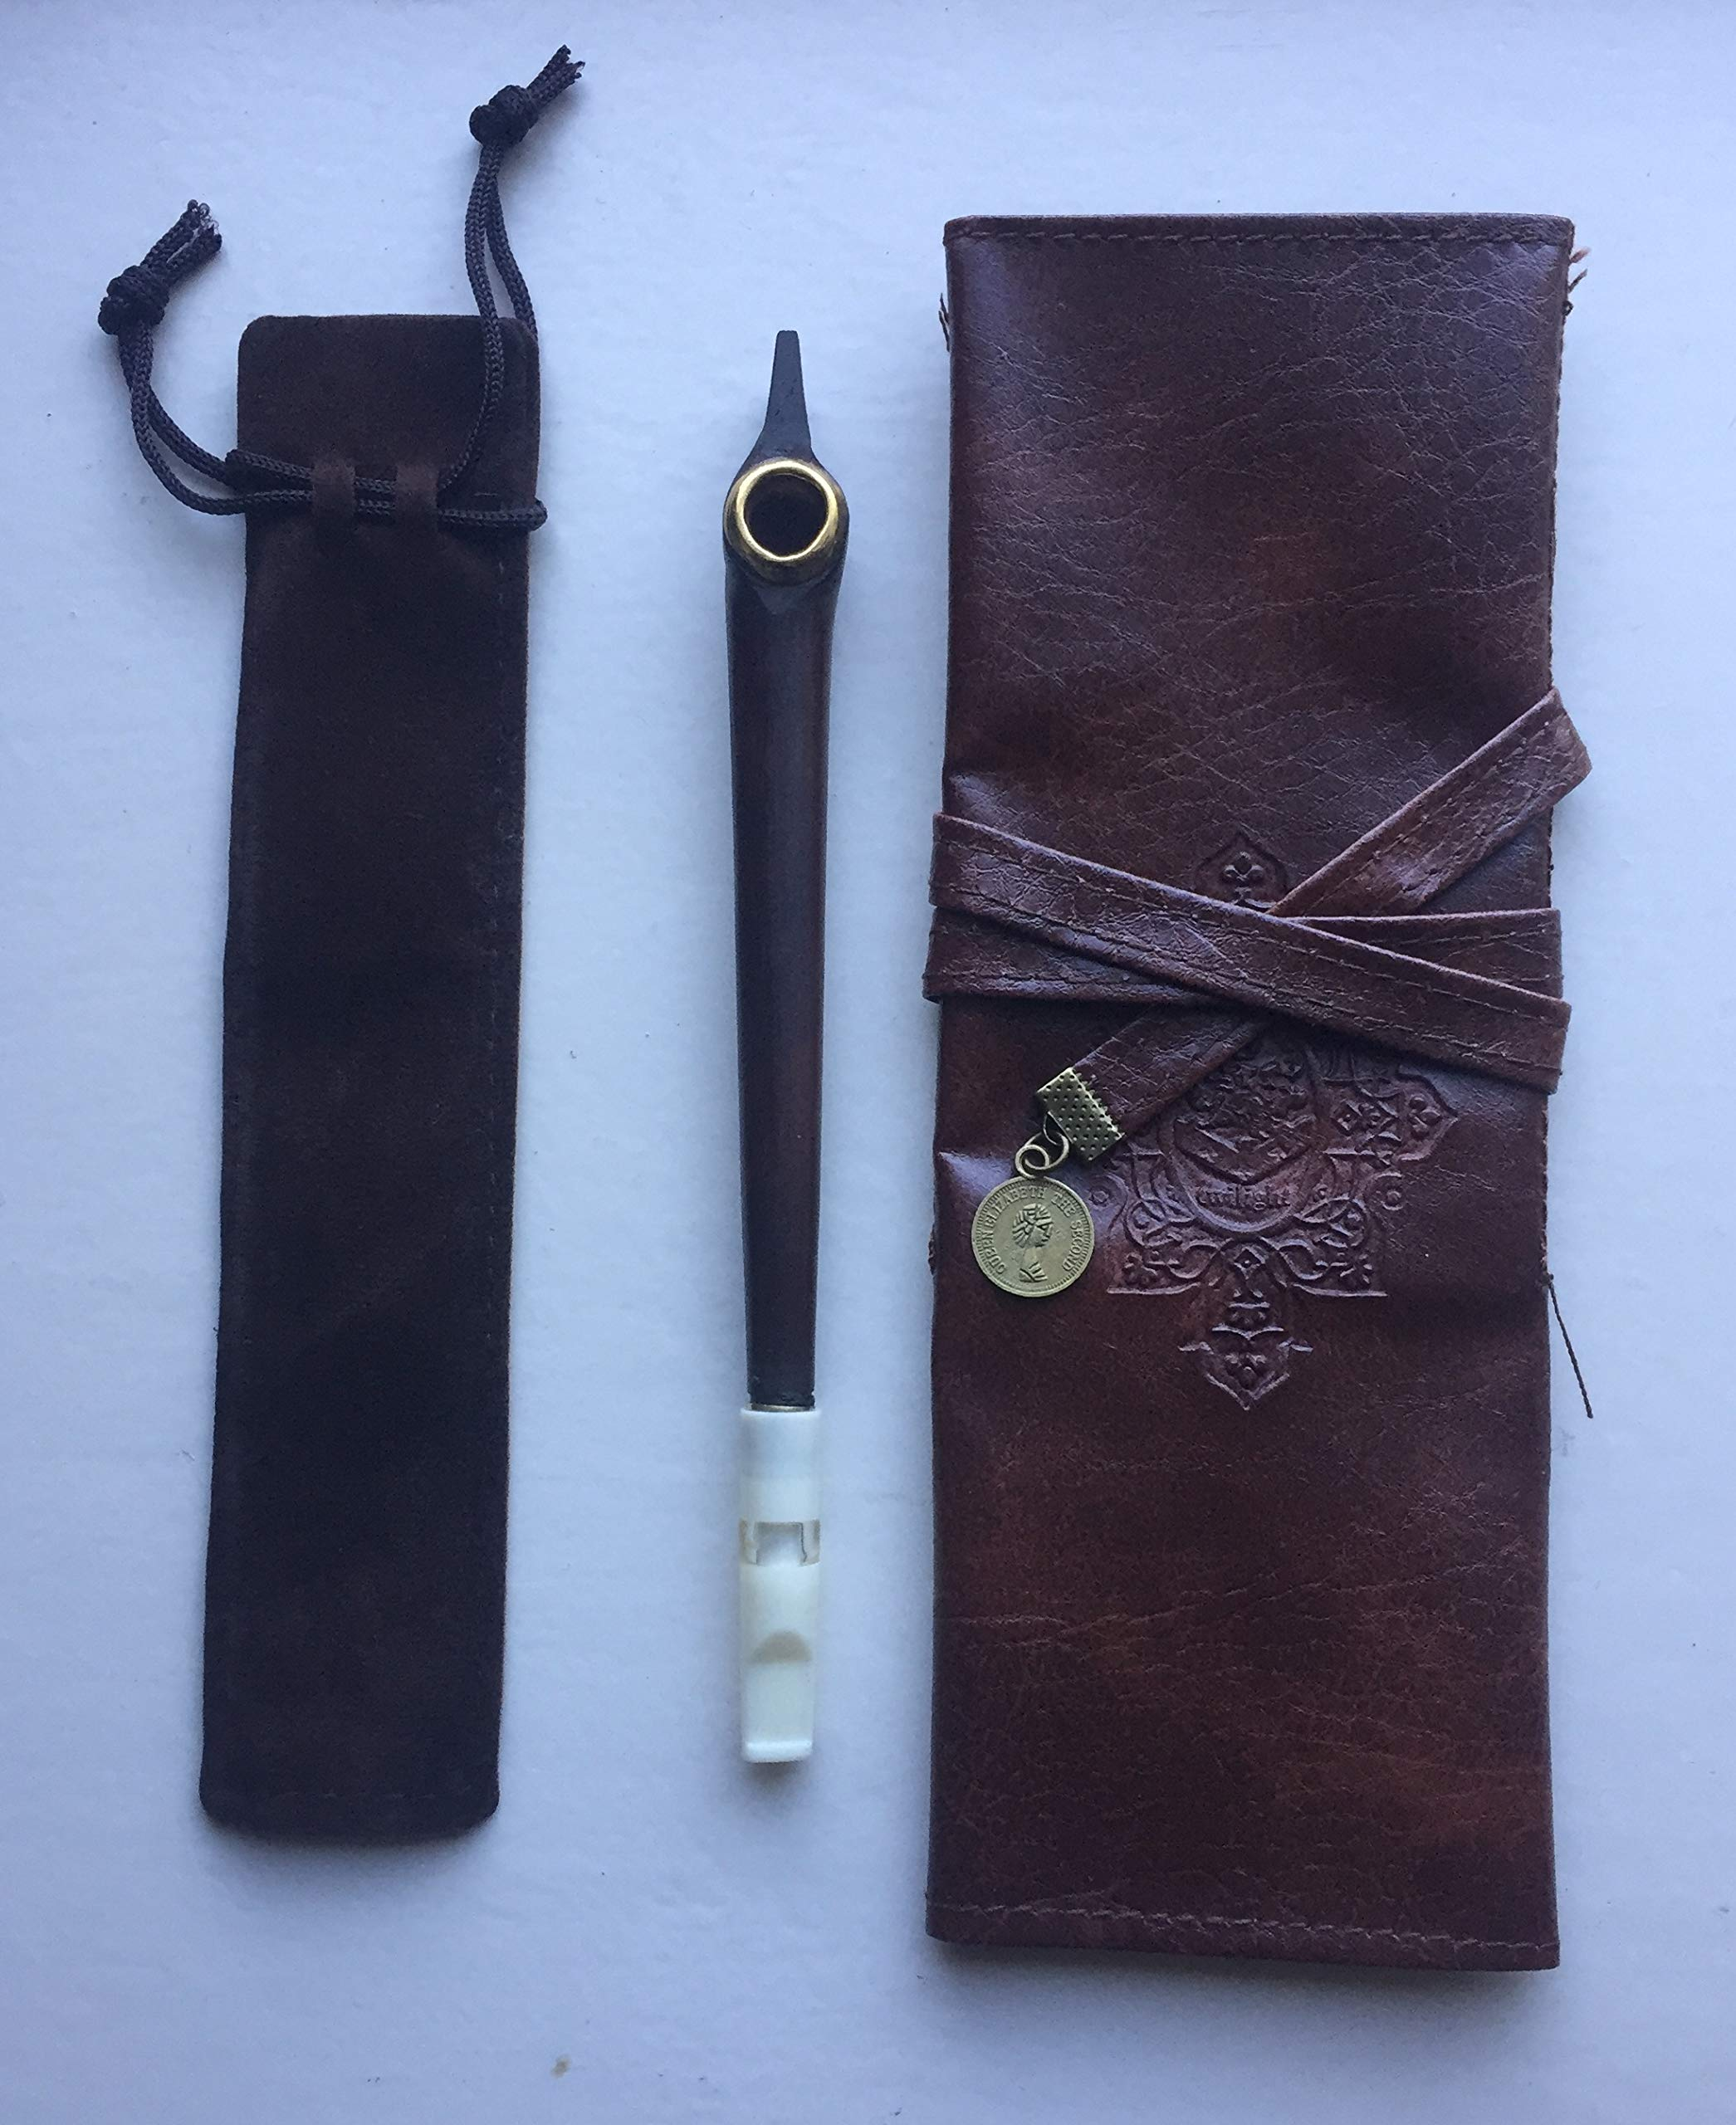 Classic Wooden Medwakh Pipe/Arabian Dokha wooden Pipe W Leather Brown Case W Velvet Bag ((A3)) by Wooden Medwakh /Arabian Dokha wooden Pipe